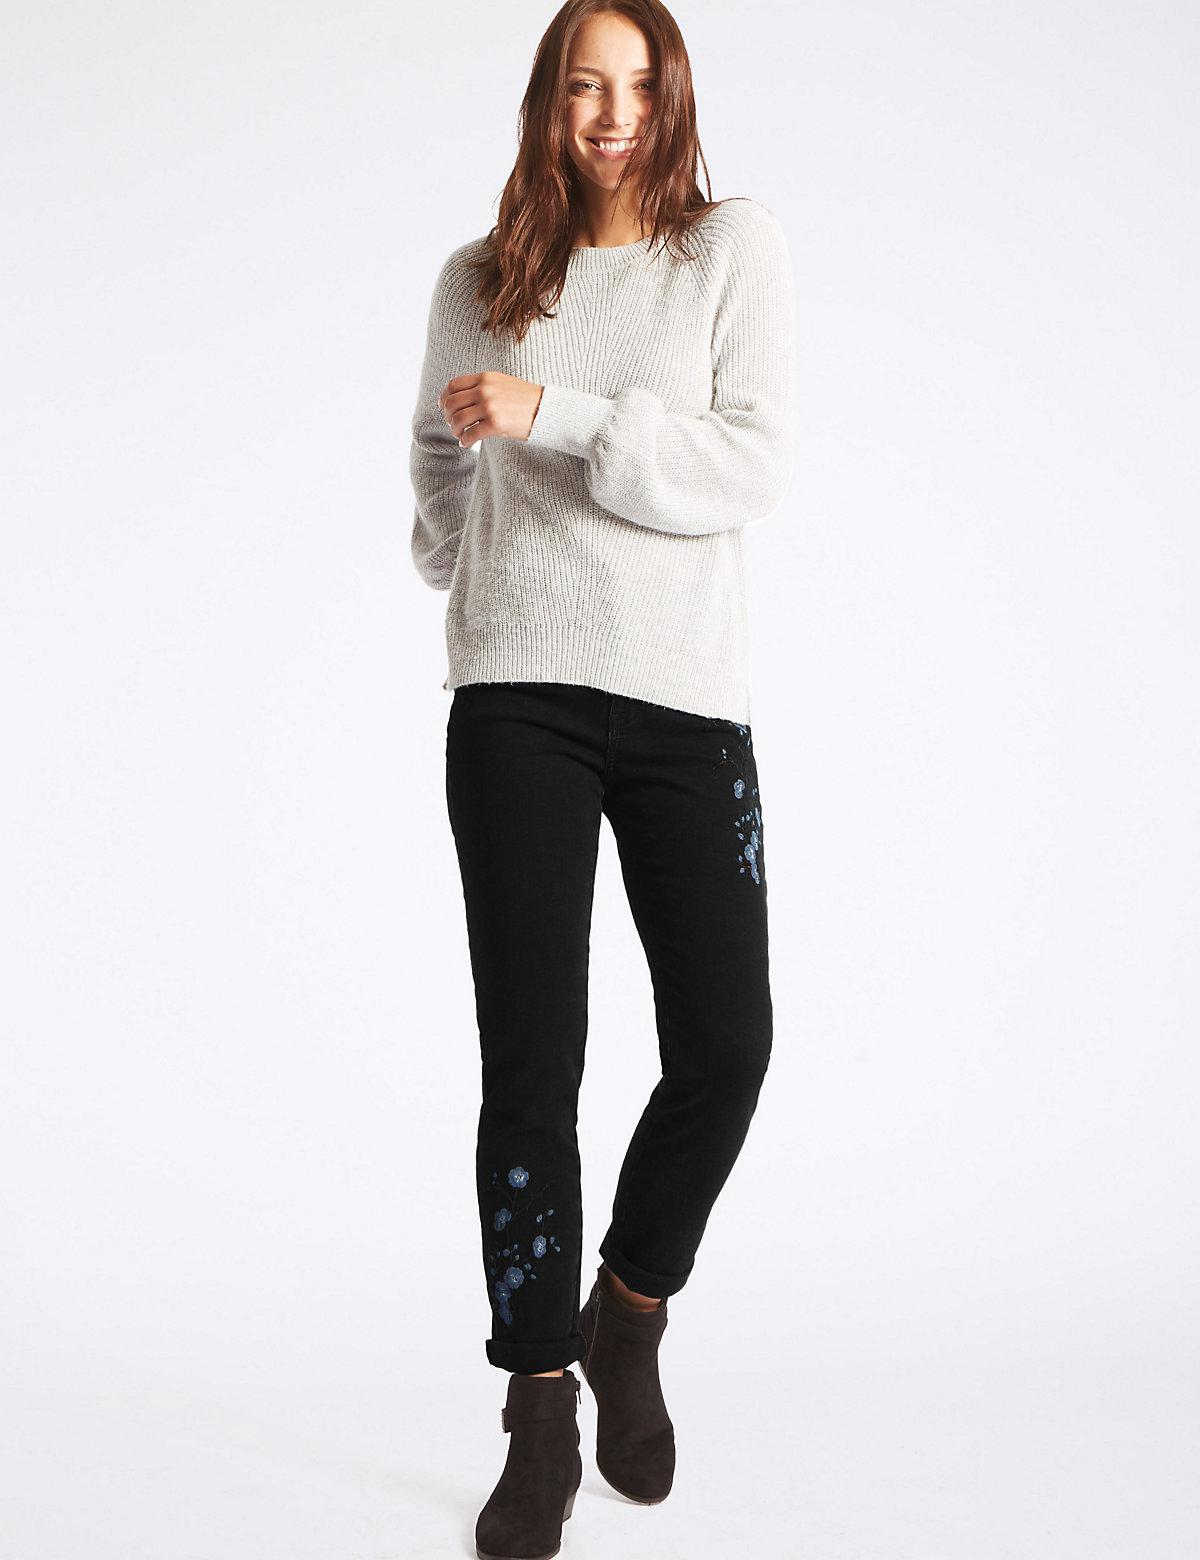 Marks spencer embroidered mid rise slim leg jeans in